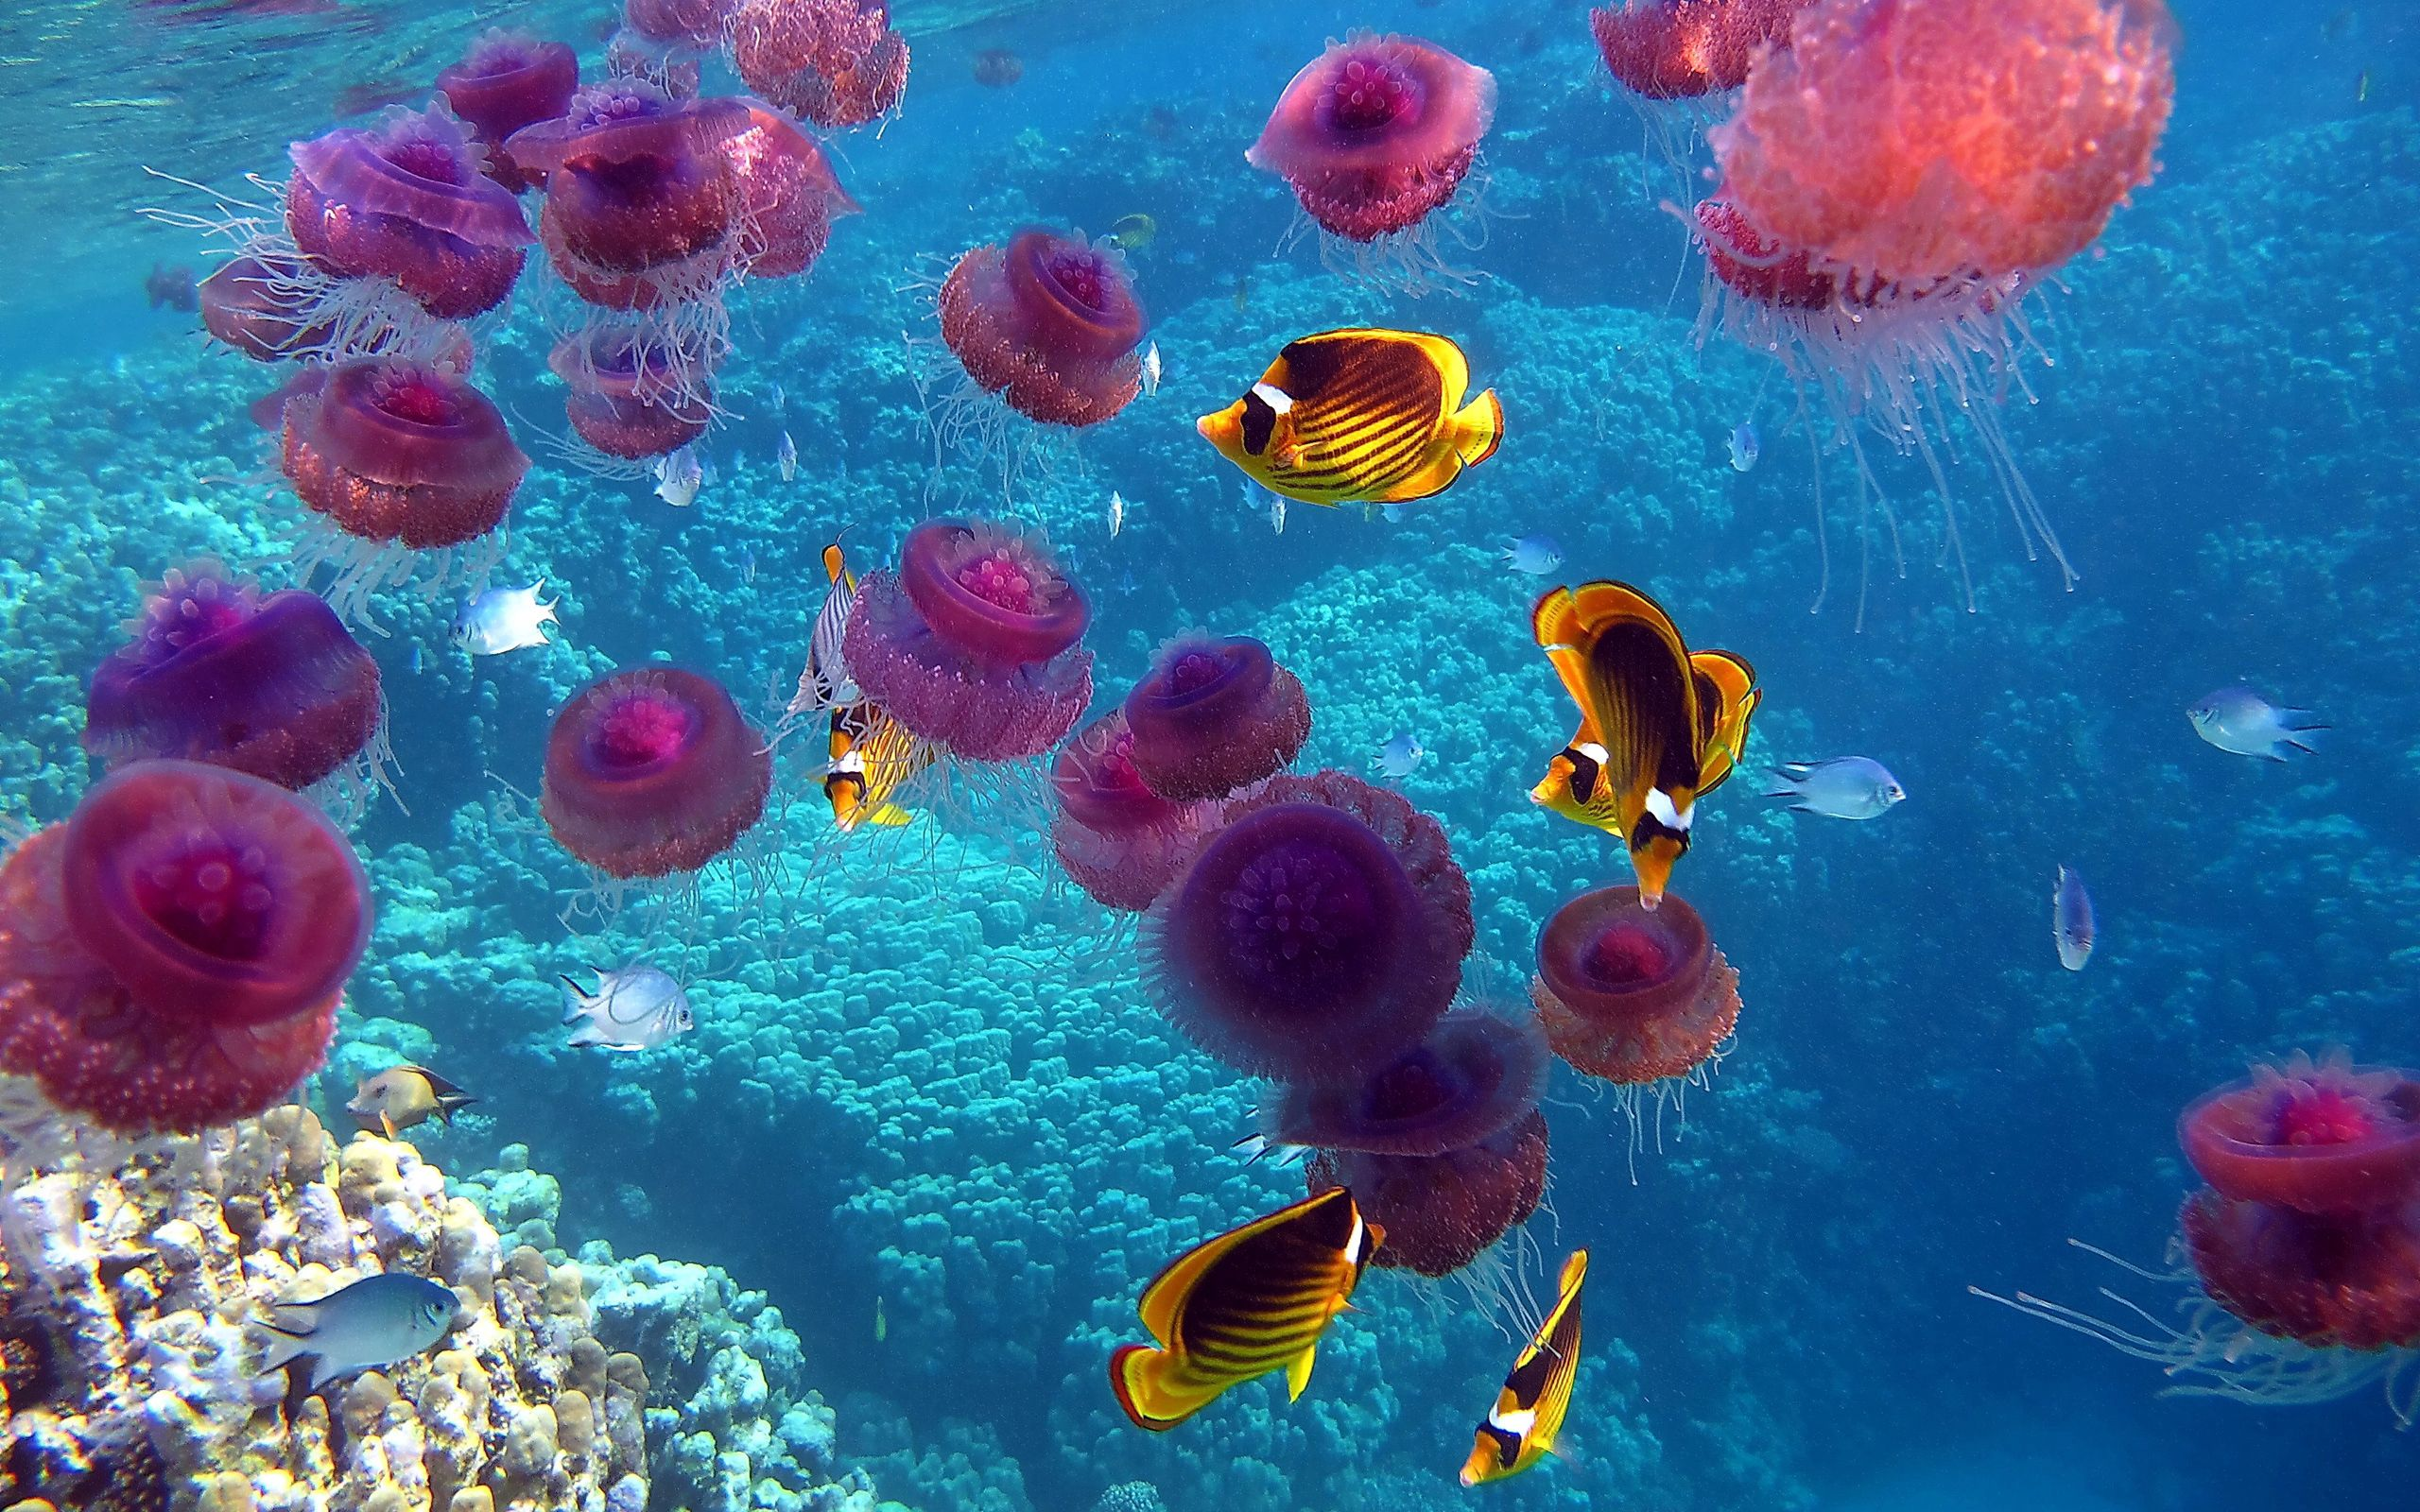 137873 download wallpaper Animals, Jellyfish, Fishes, Underwater World, To Swim, Swim screensavers and pictures for free